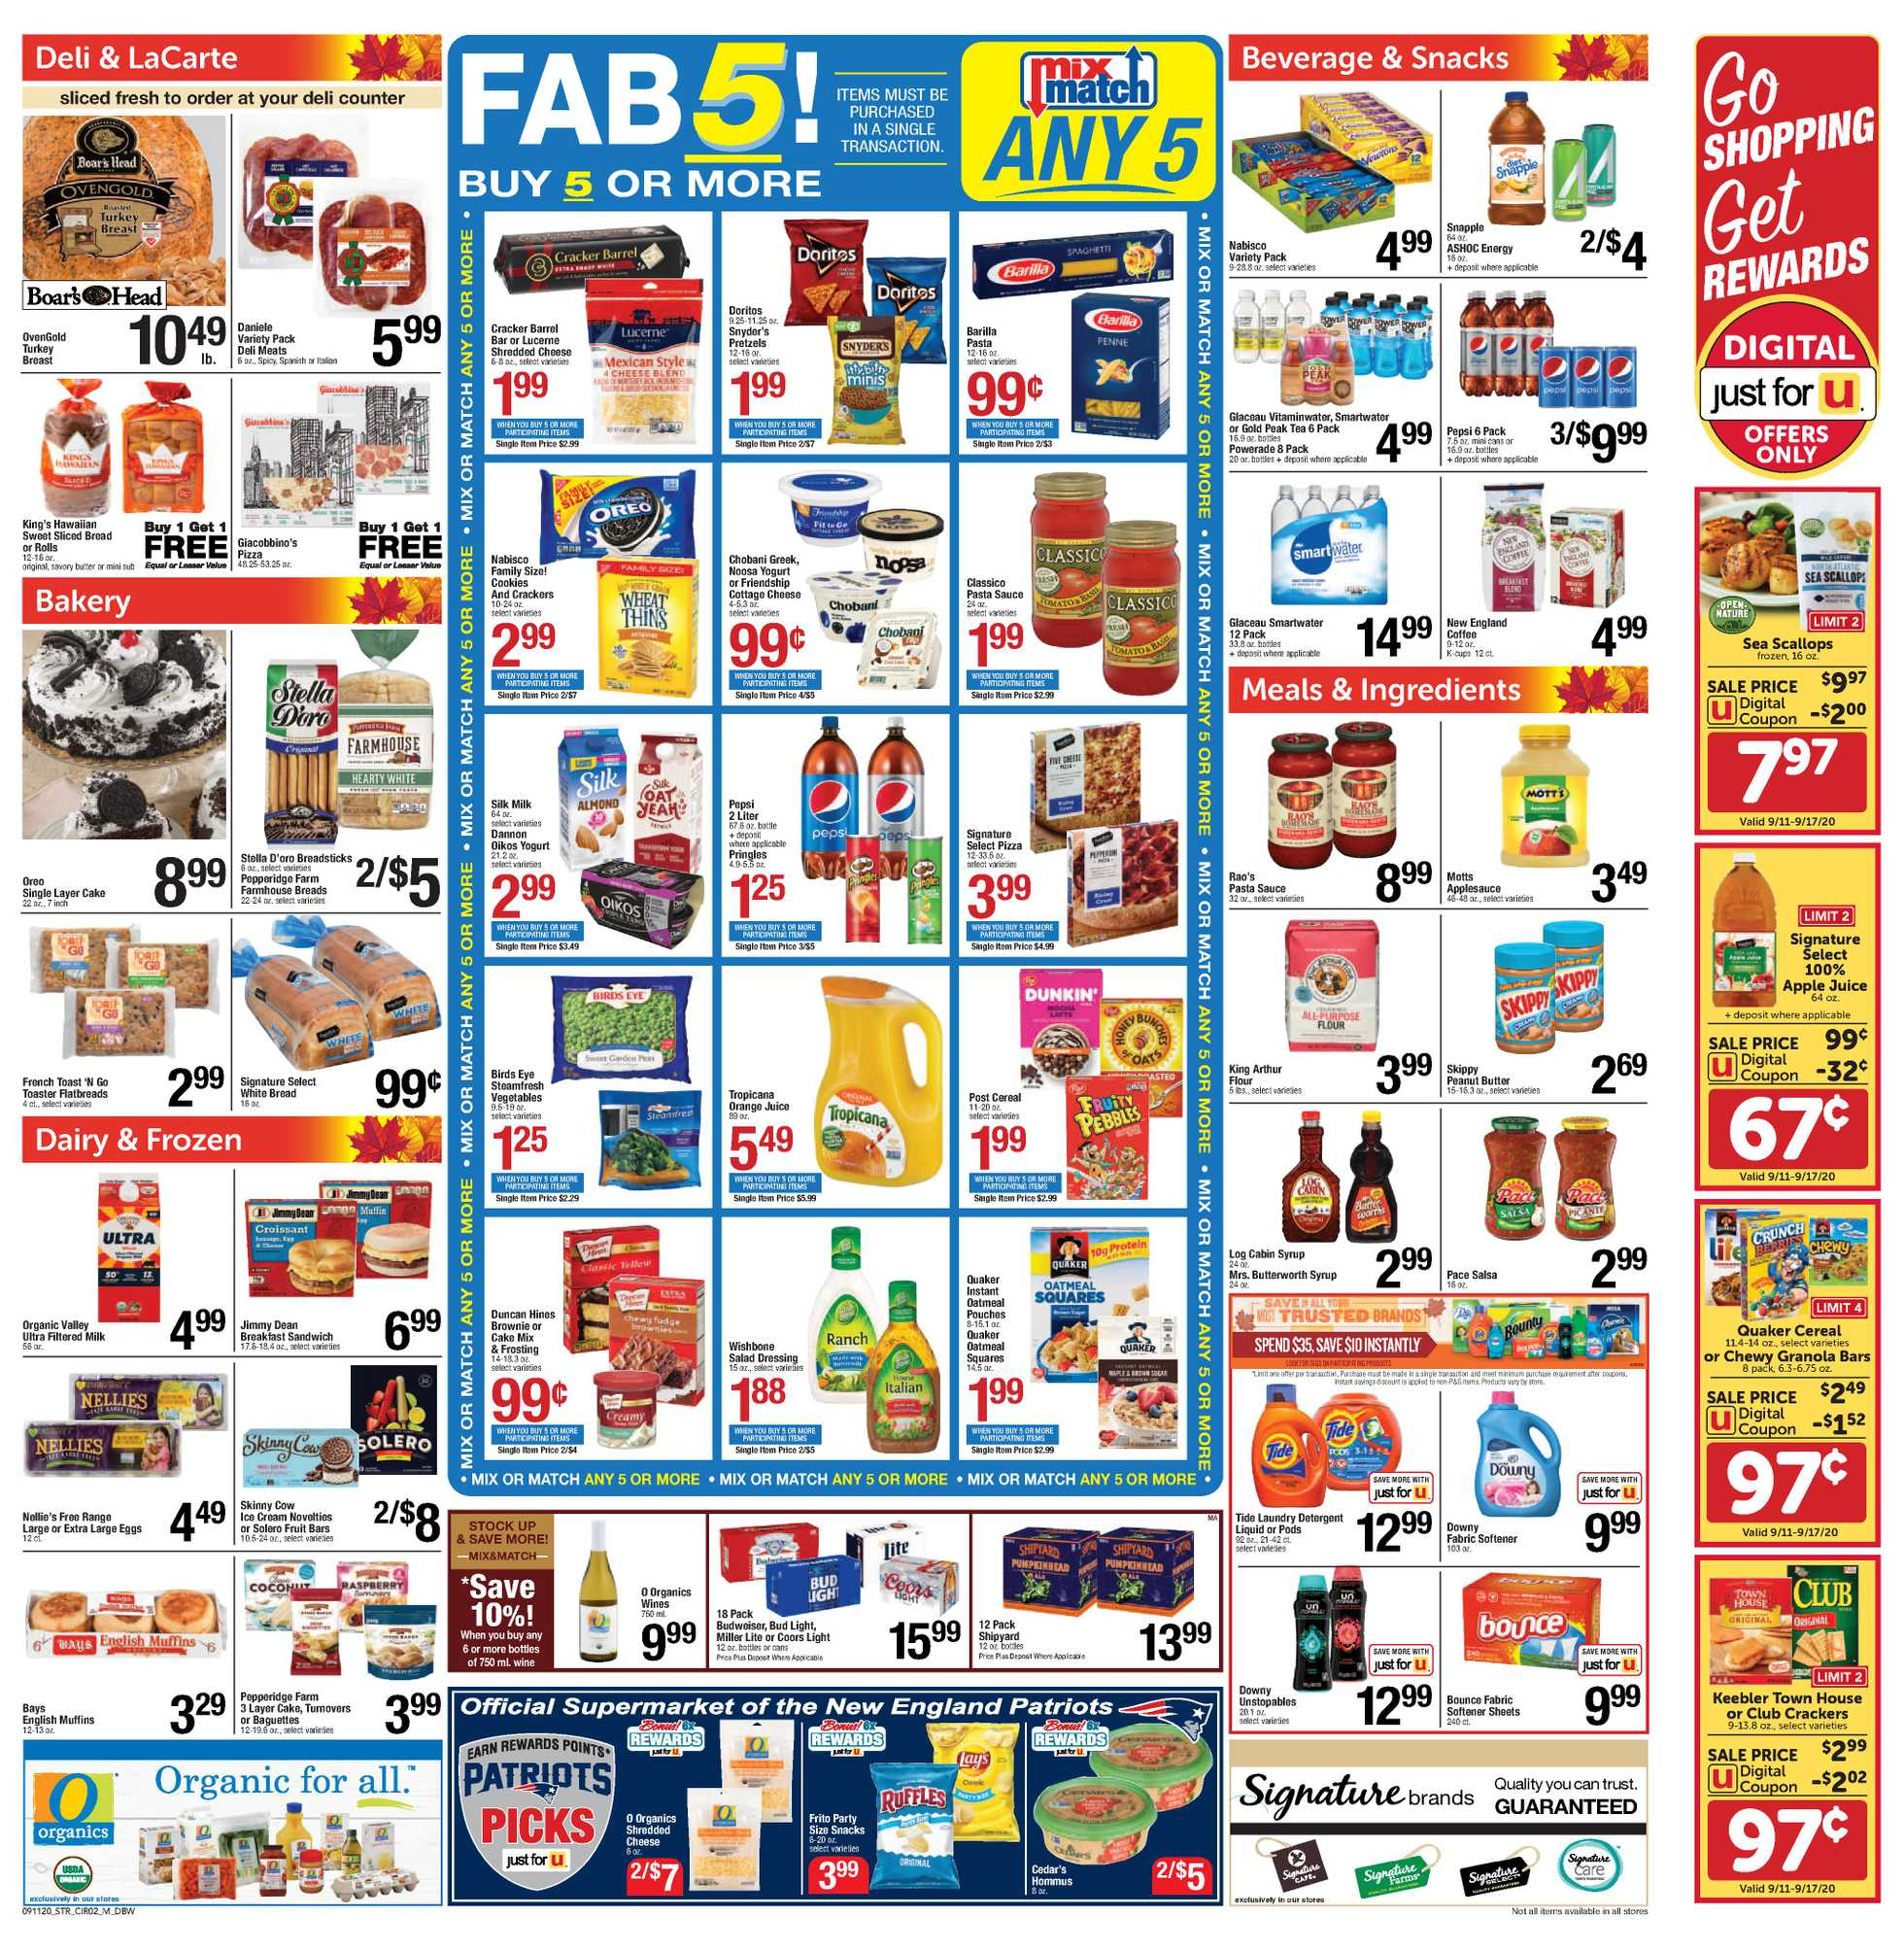 Star Market - deals are valid from 09/11/20 to 09/17/20 - page 2.